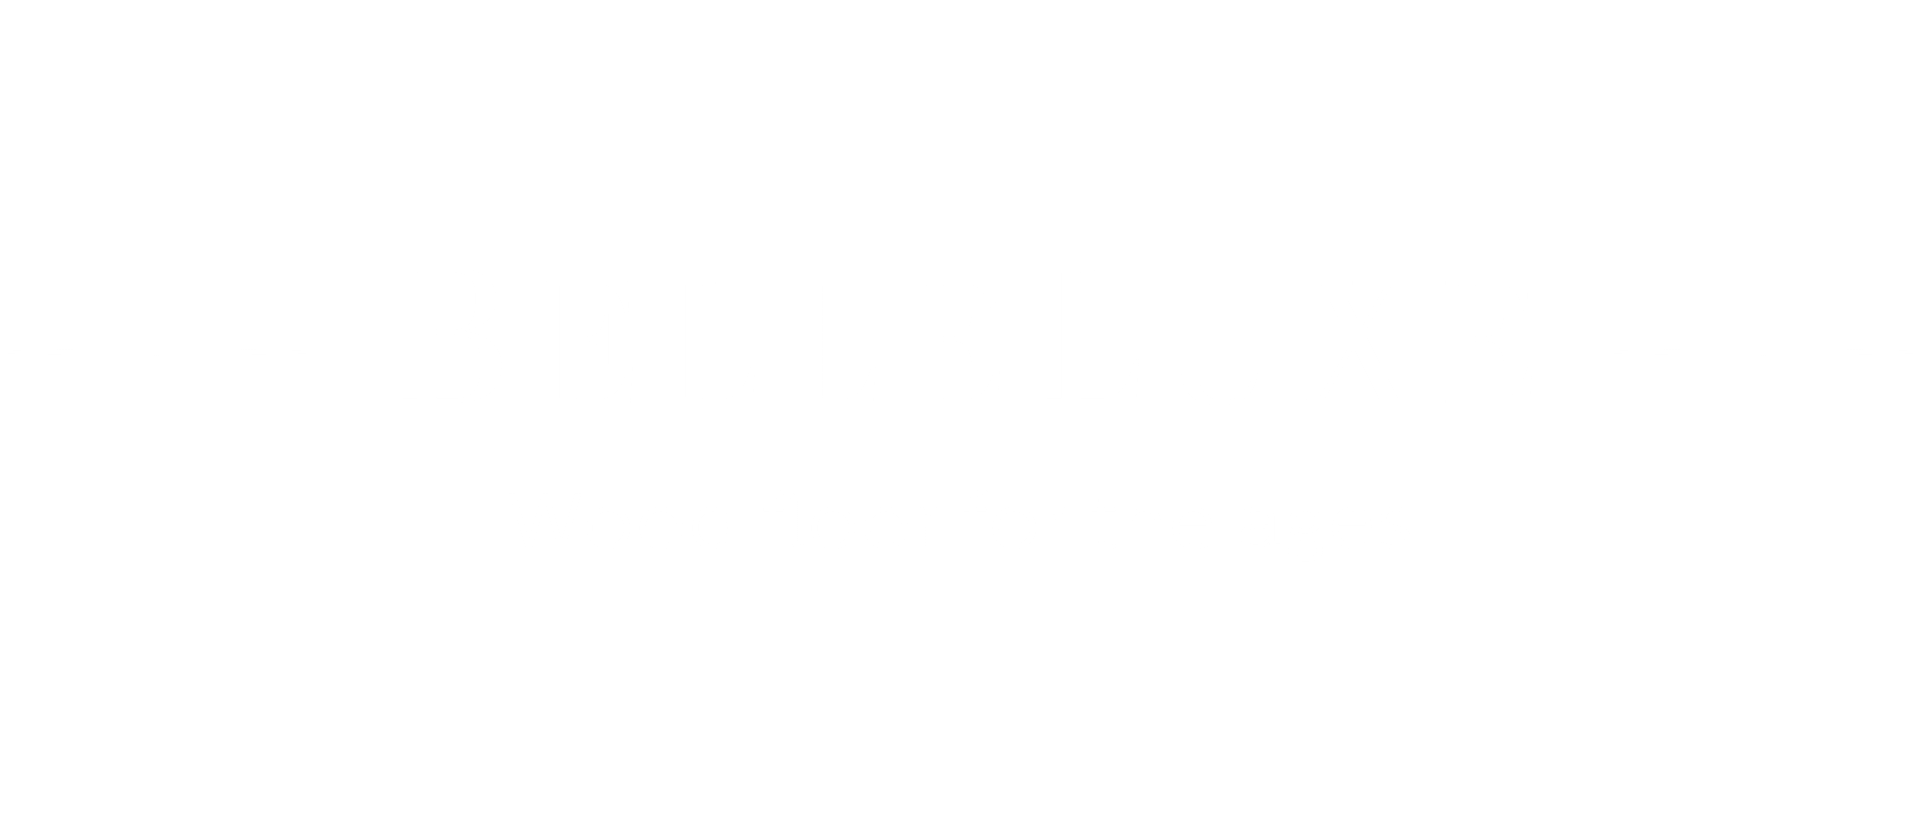 BelleLuxe Wood floor for the ages